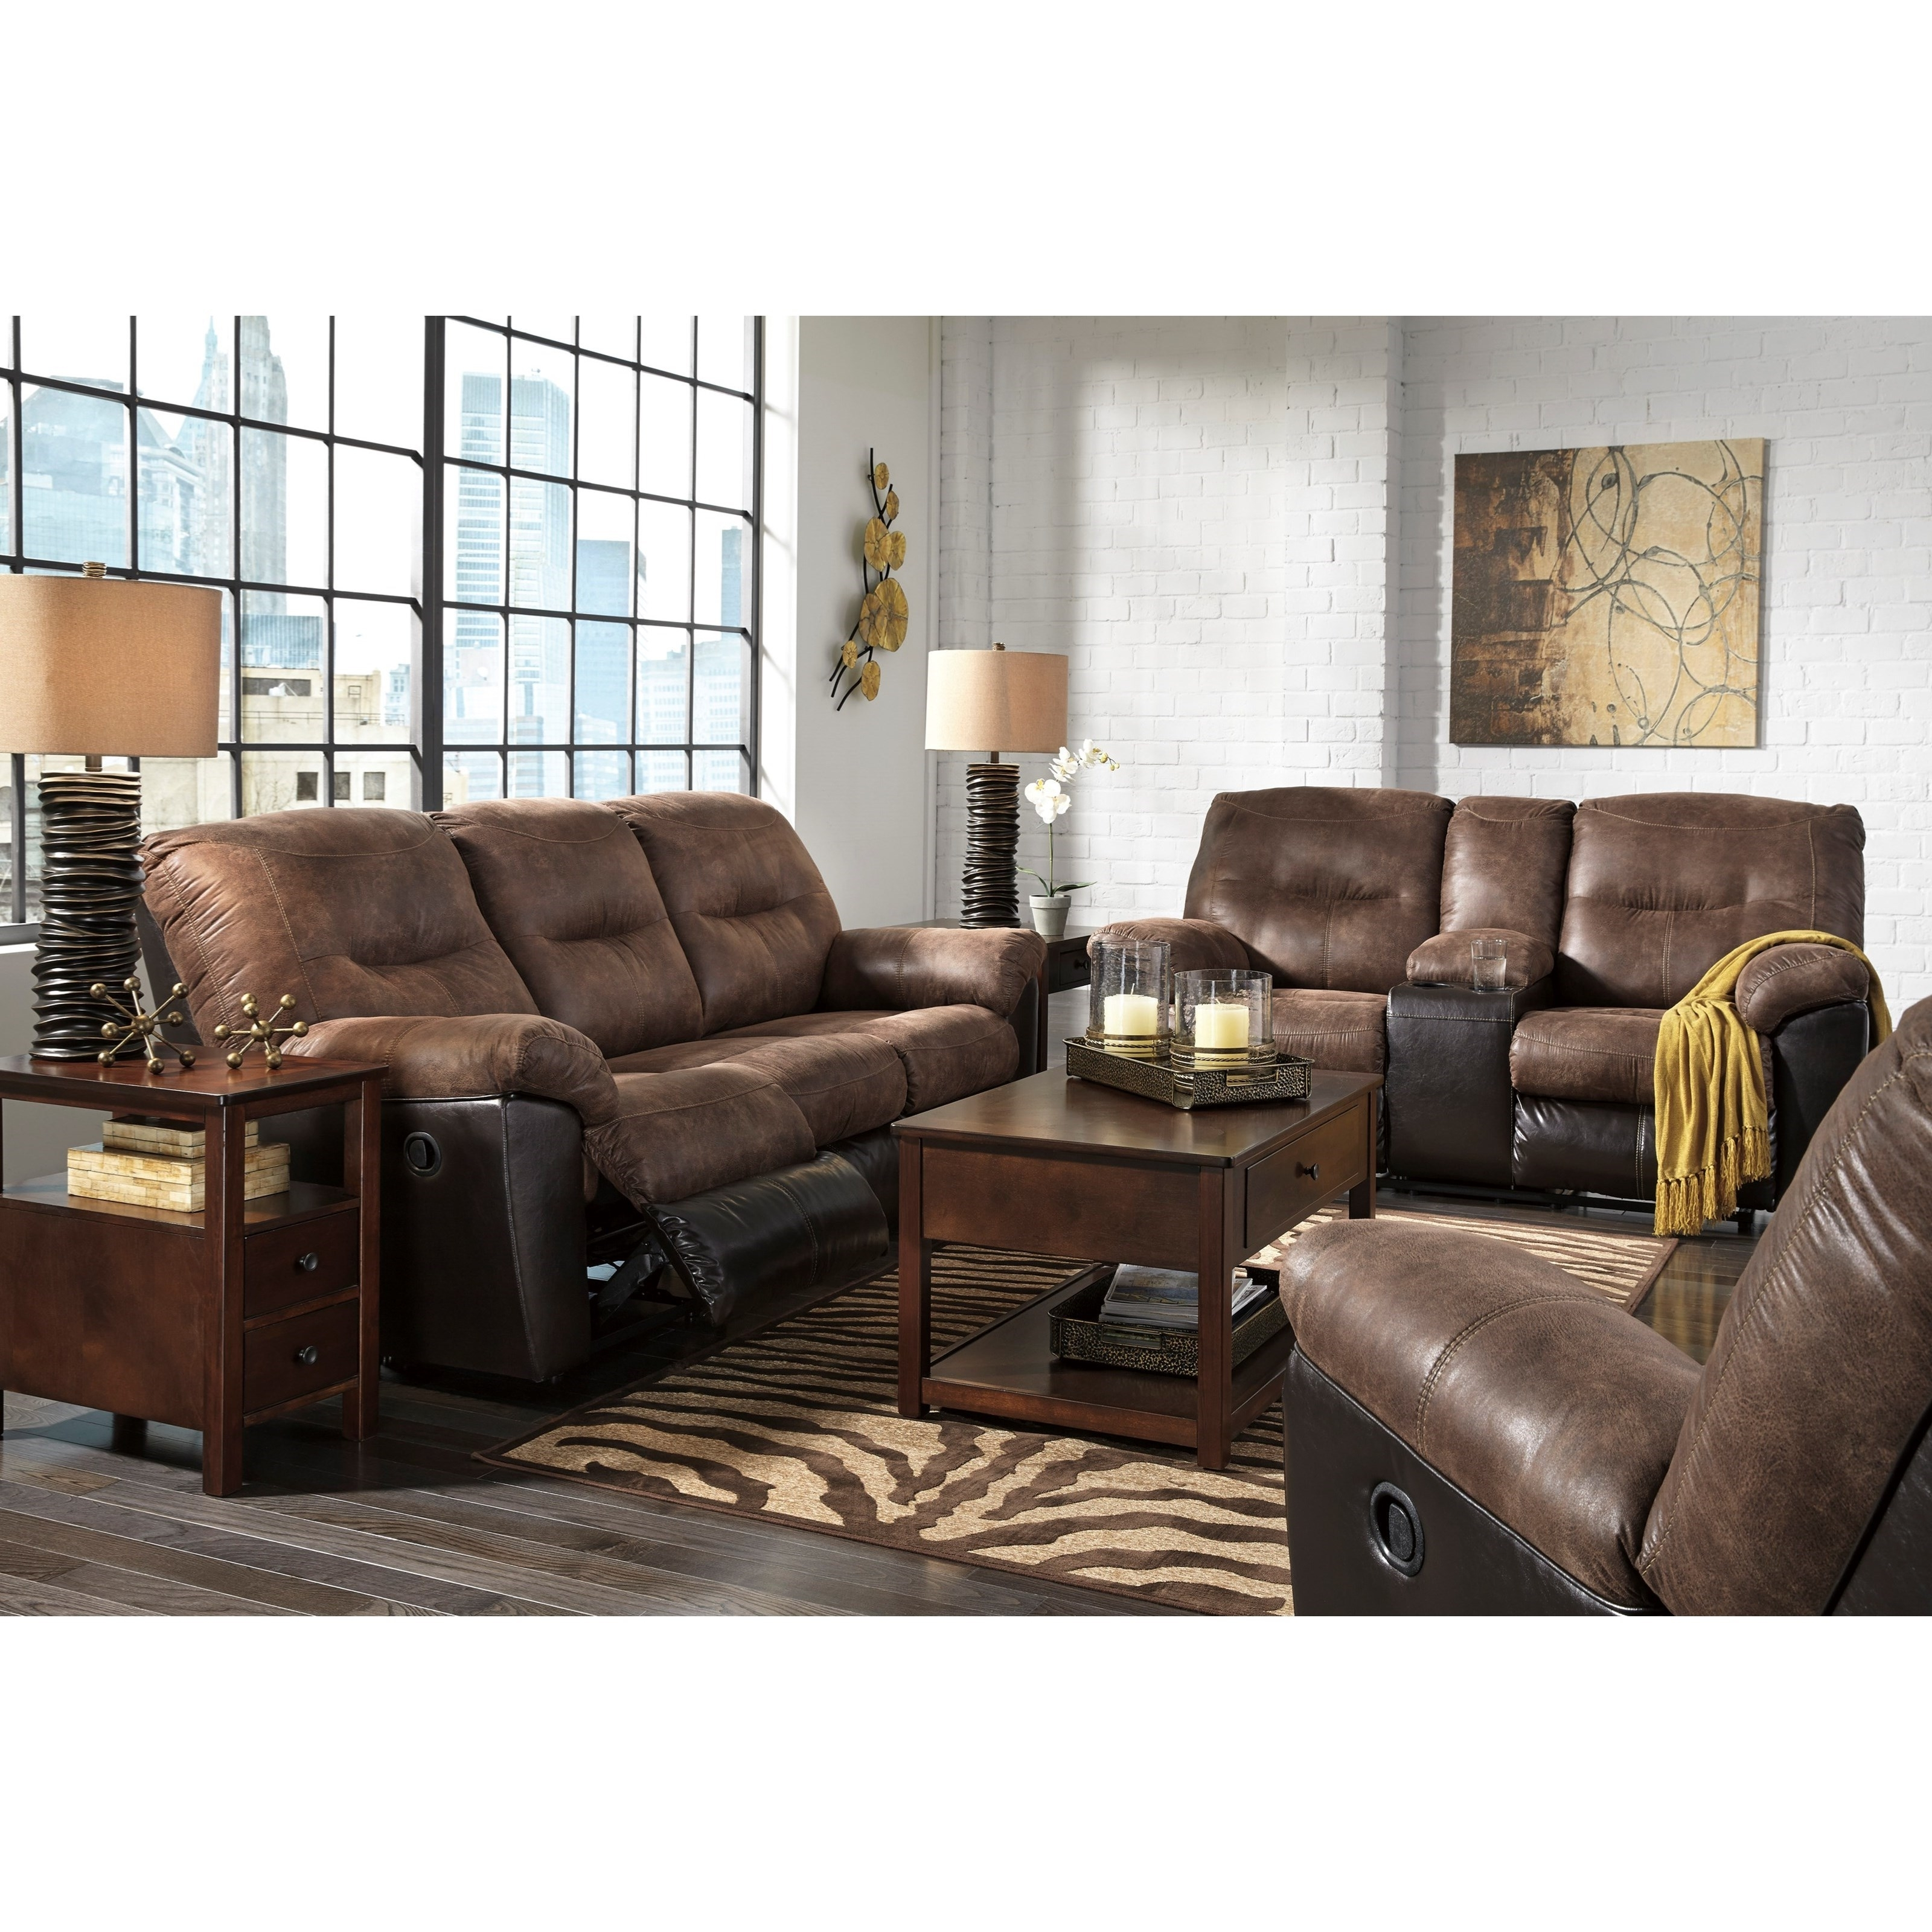 Two Tone Faux Leather Reclining Sofasignature Designashley Pertaining To Fashionable Two Tone Sofas (View 18 of 20)